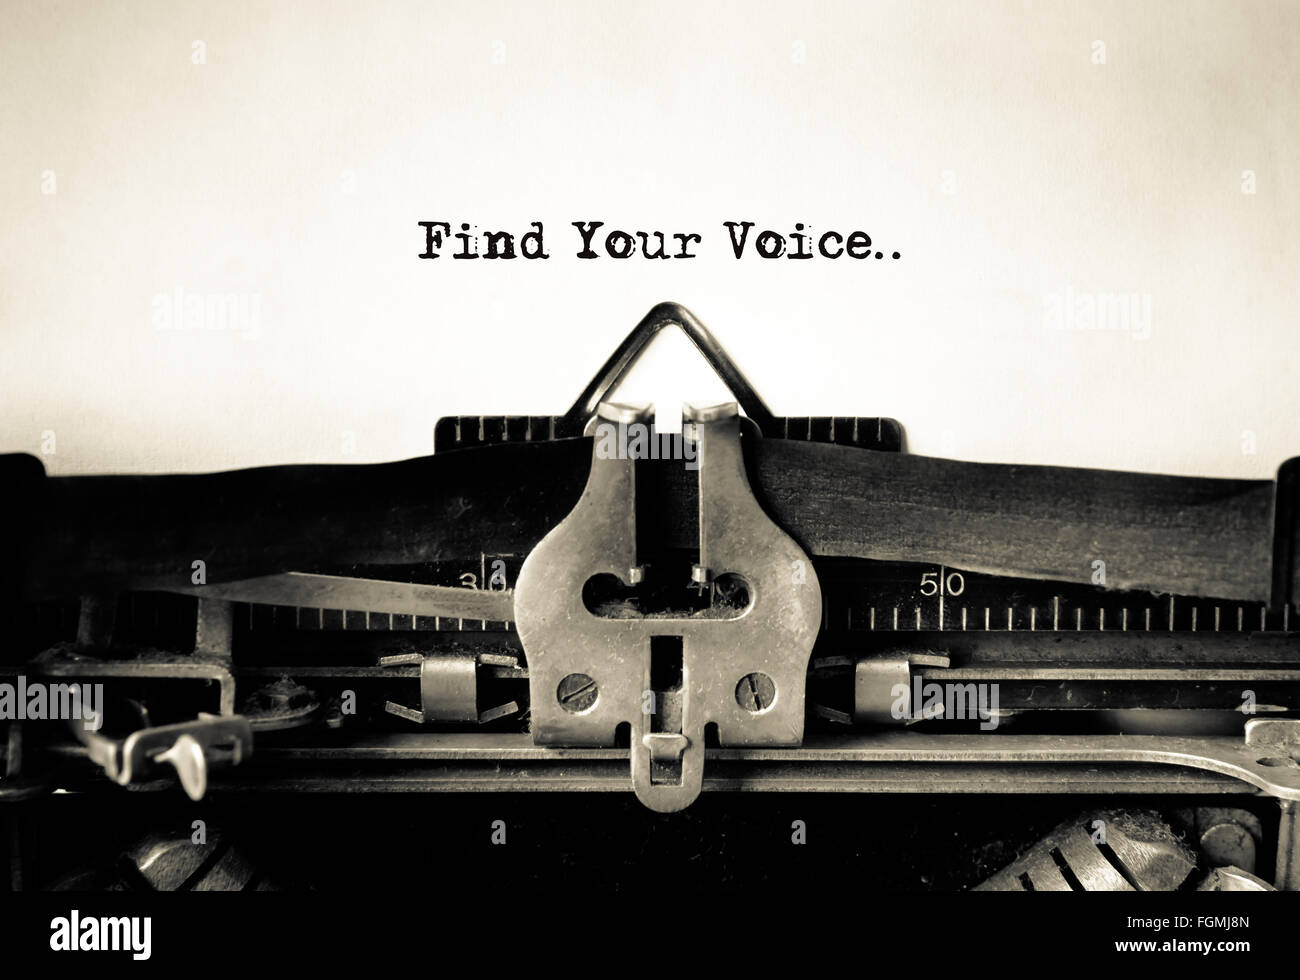 Find Your Voice message typed on vintage typewriter - Stock Image